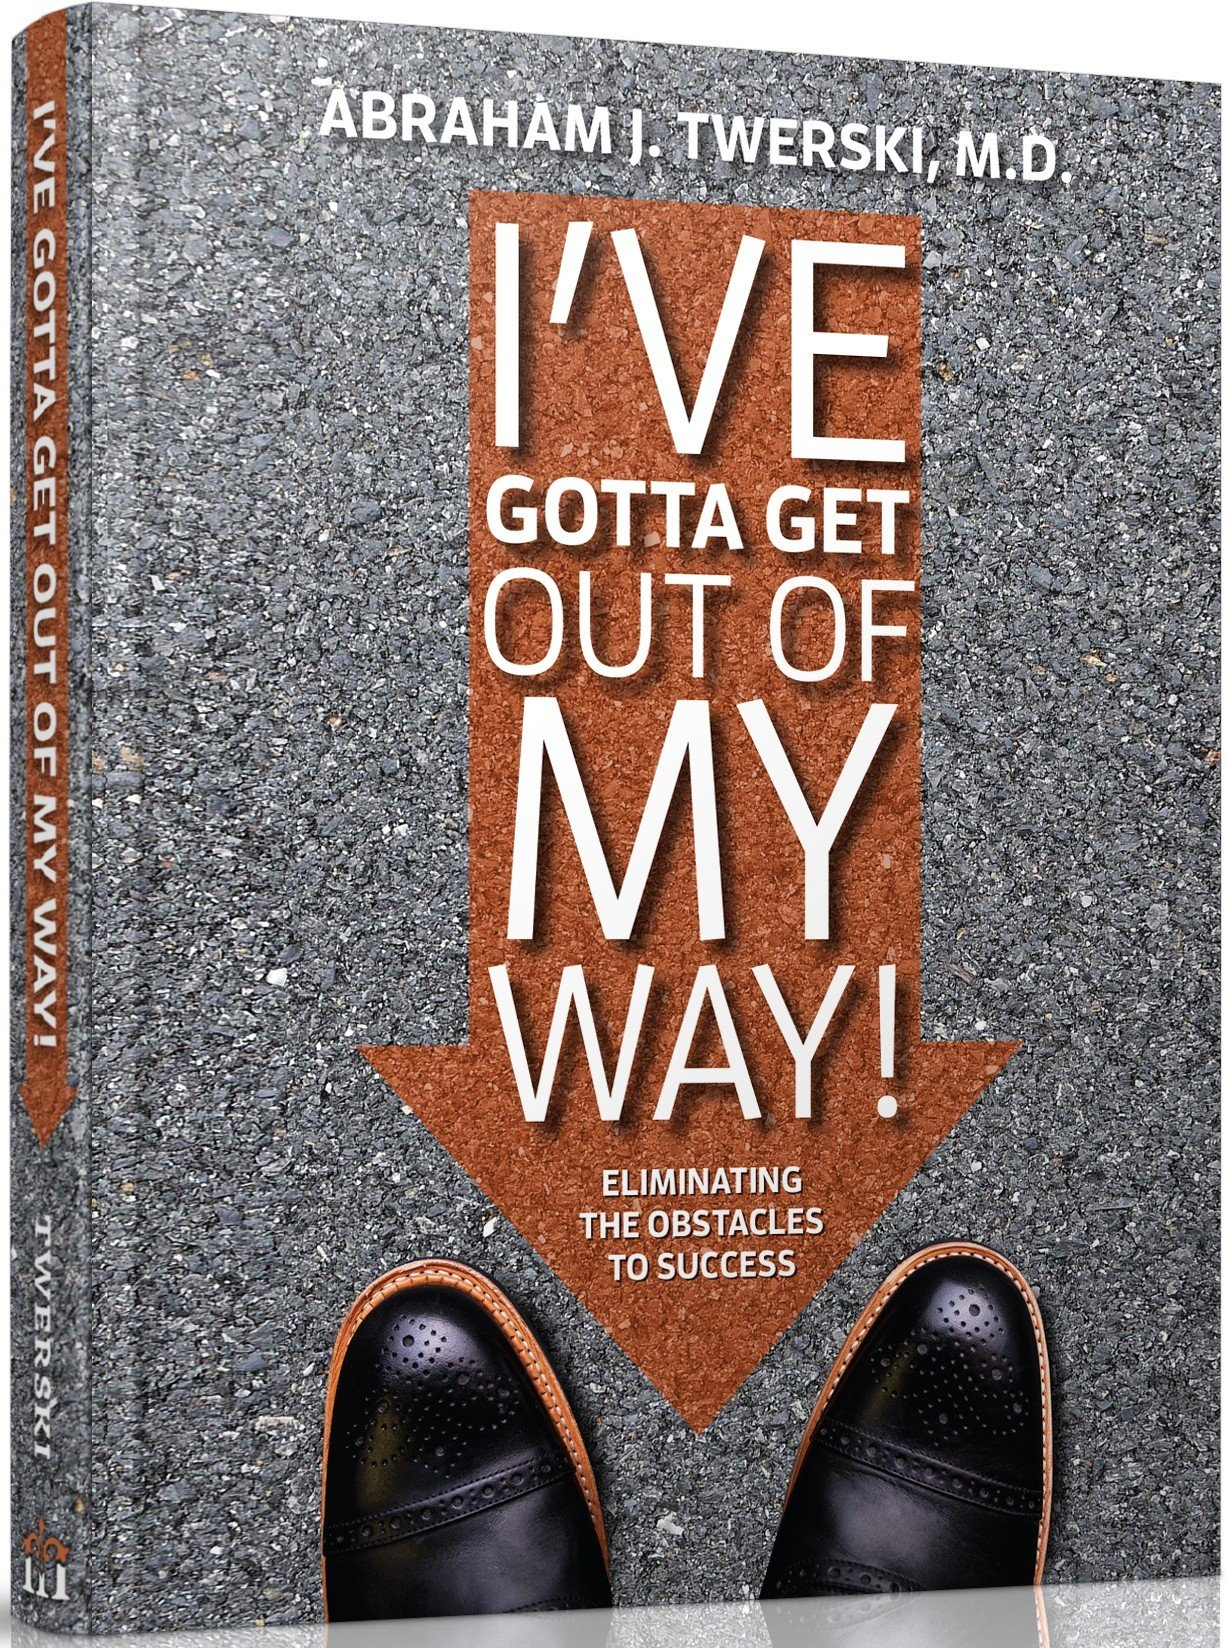 I've Gotta Get Out of My Way - Eliminating the obstacles to success